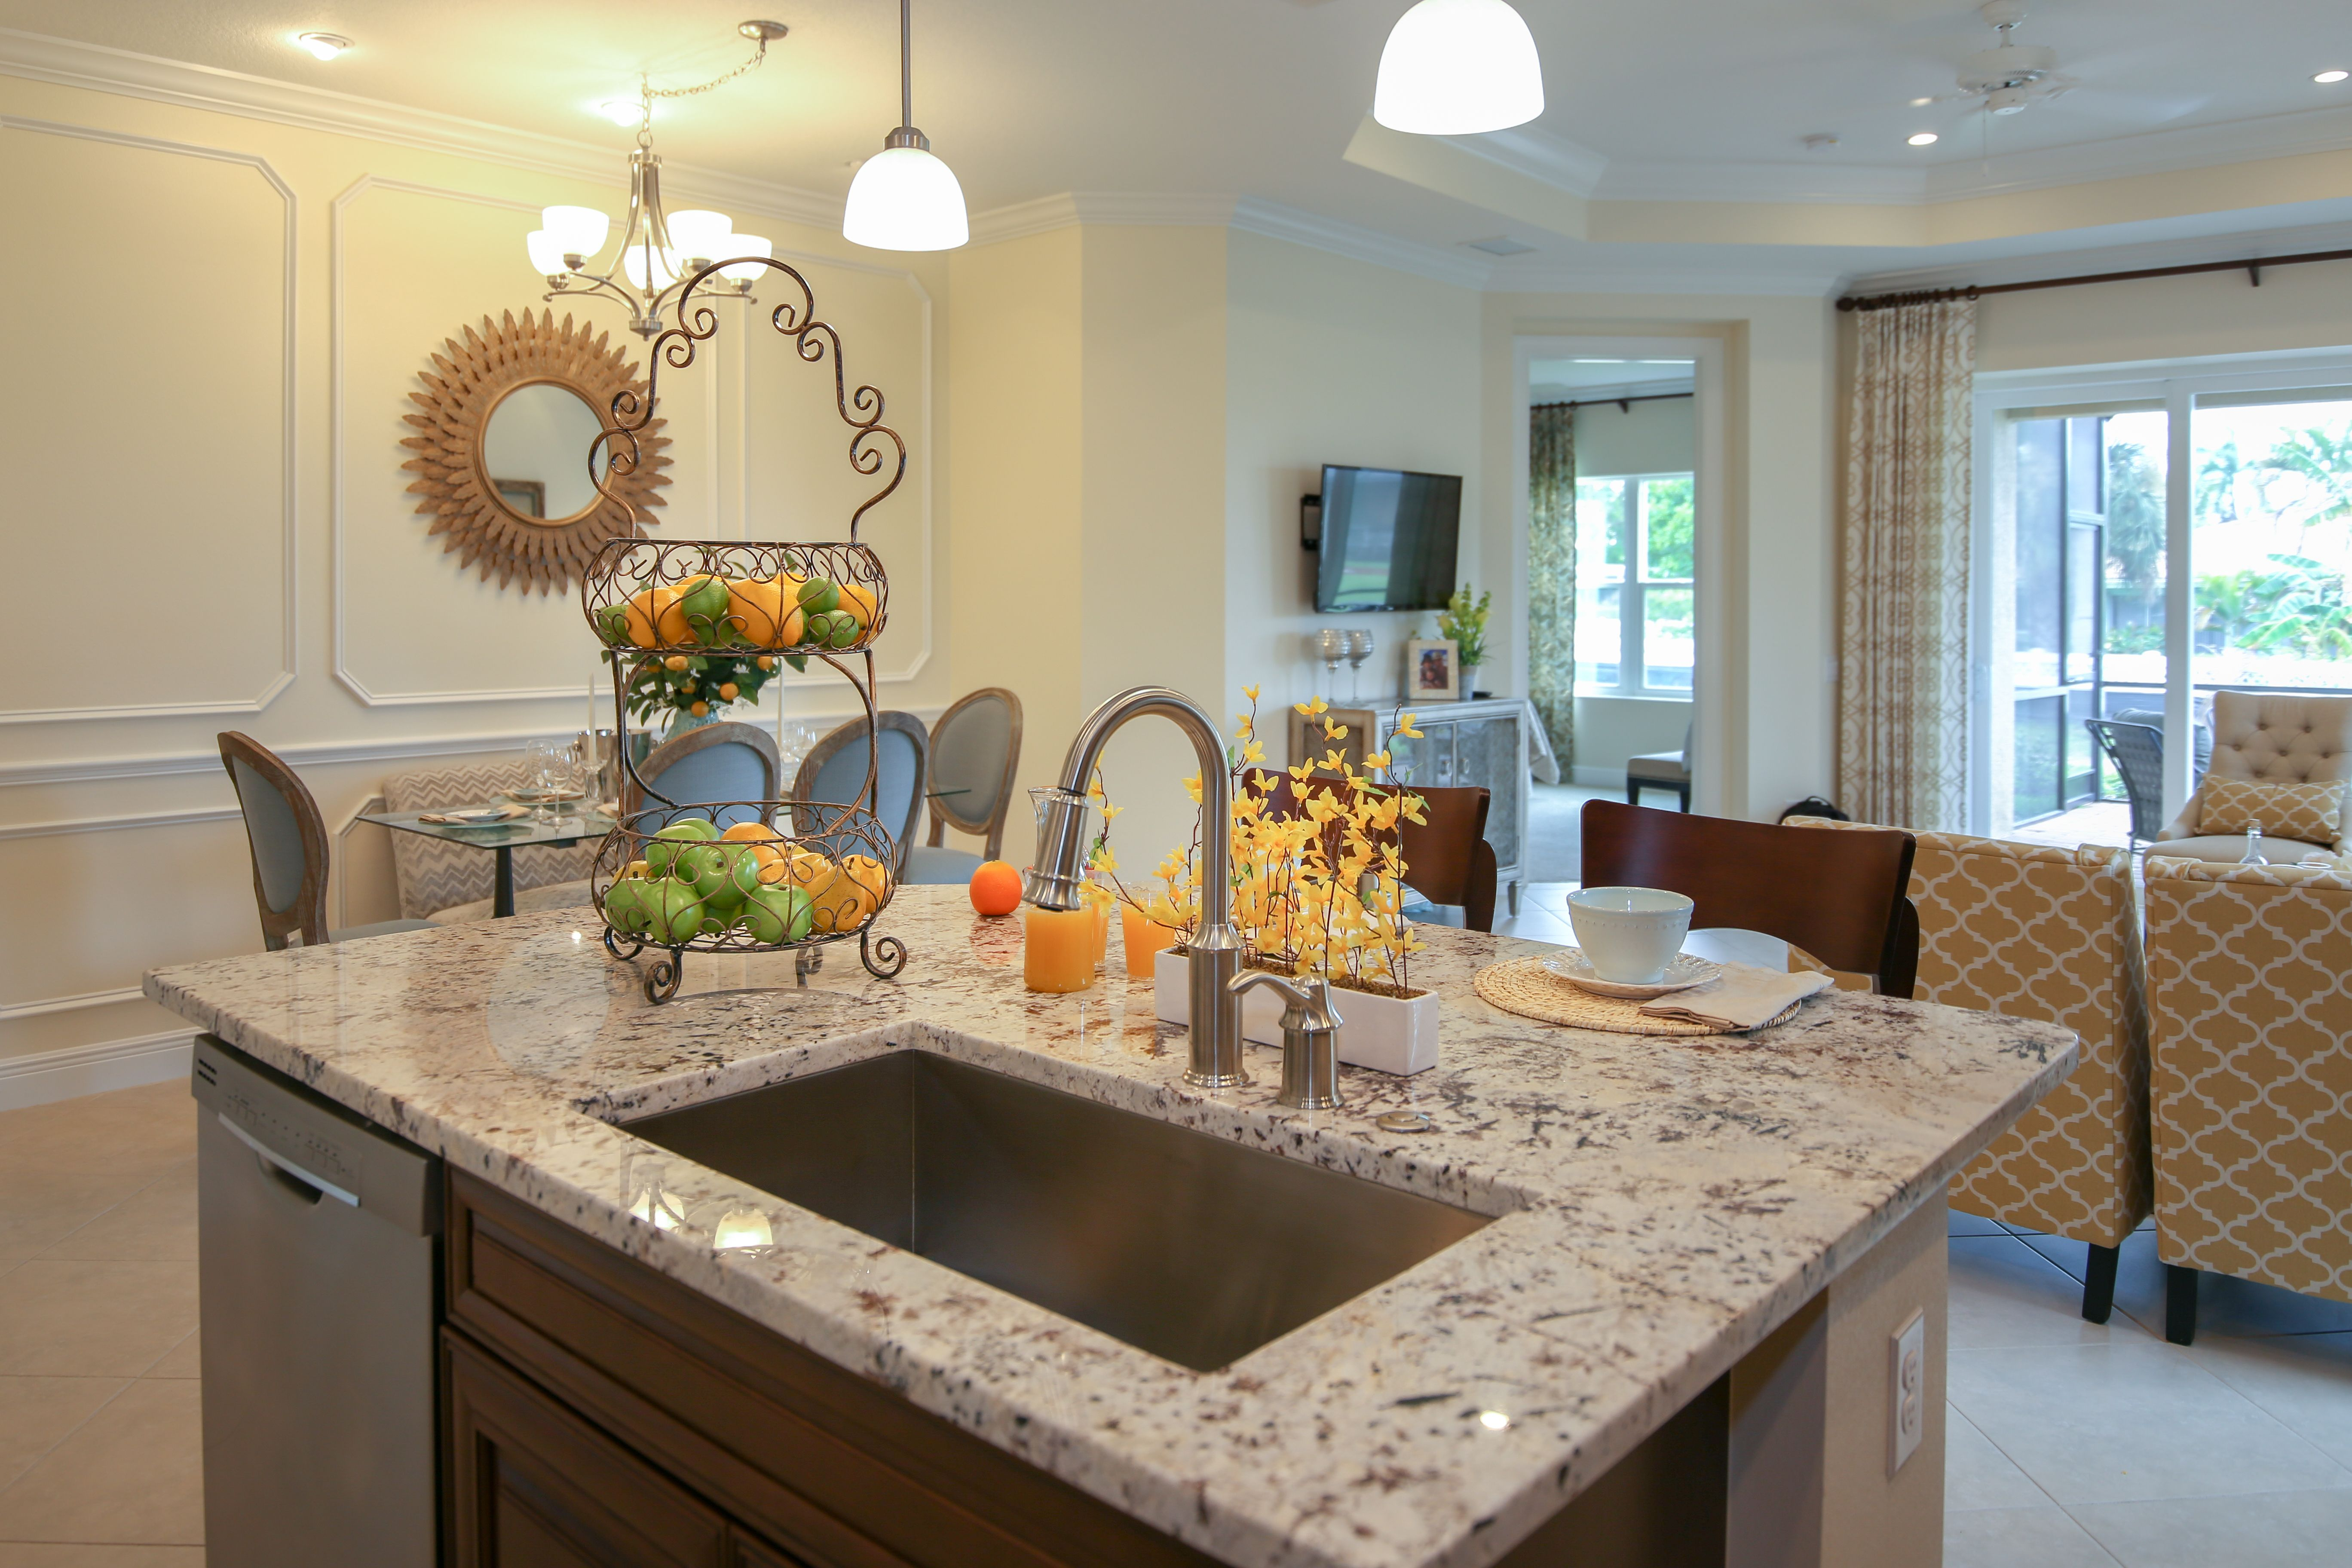 Kitchen with island counter and breakfast nook.